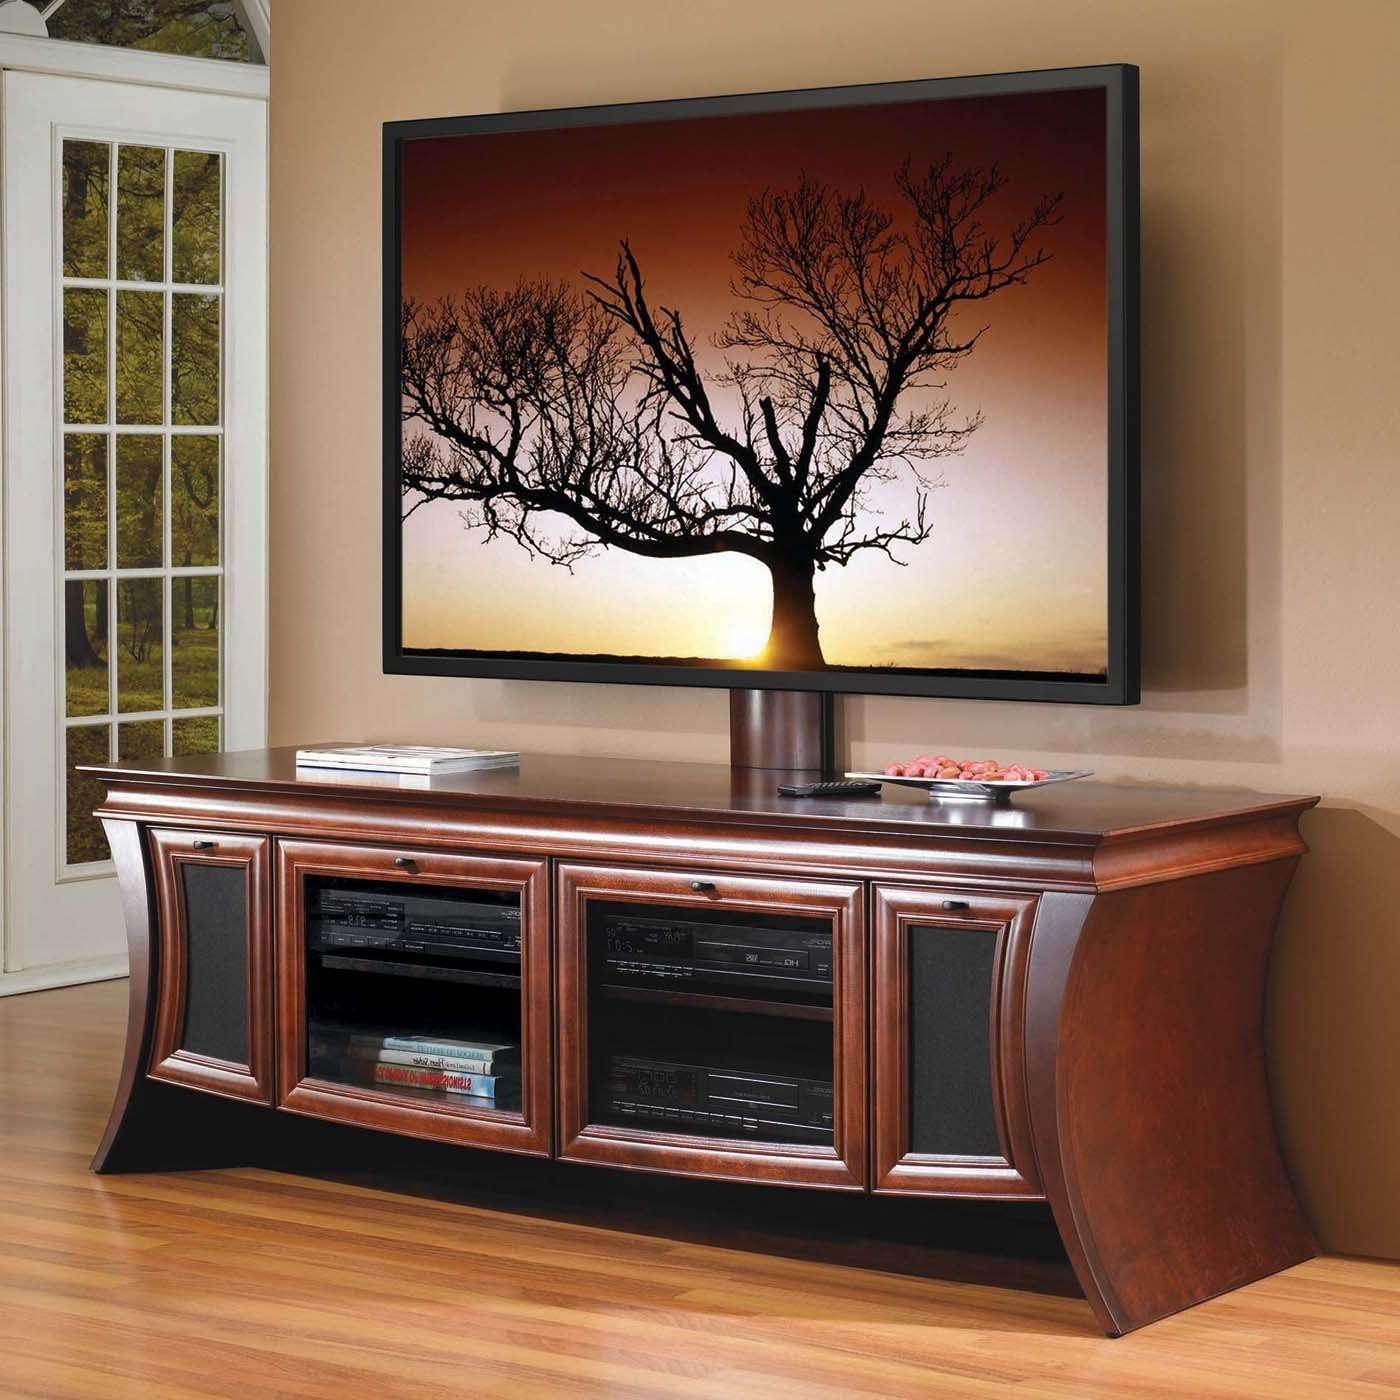 Furnitures Media Stands For Flat Screen Tvs Furniture The Best For Modern Tv Cabinets For Flat Screens (View 7 of 20)